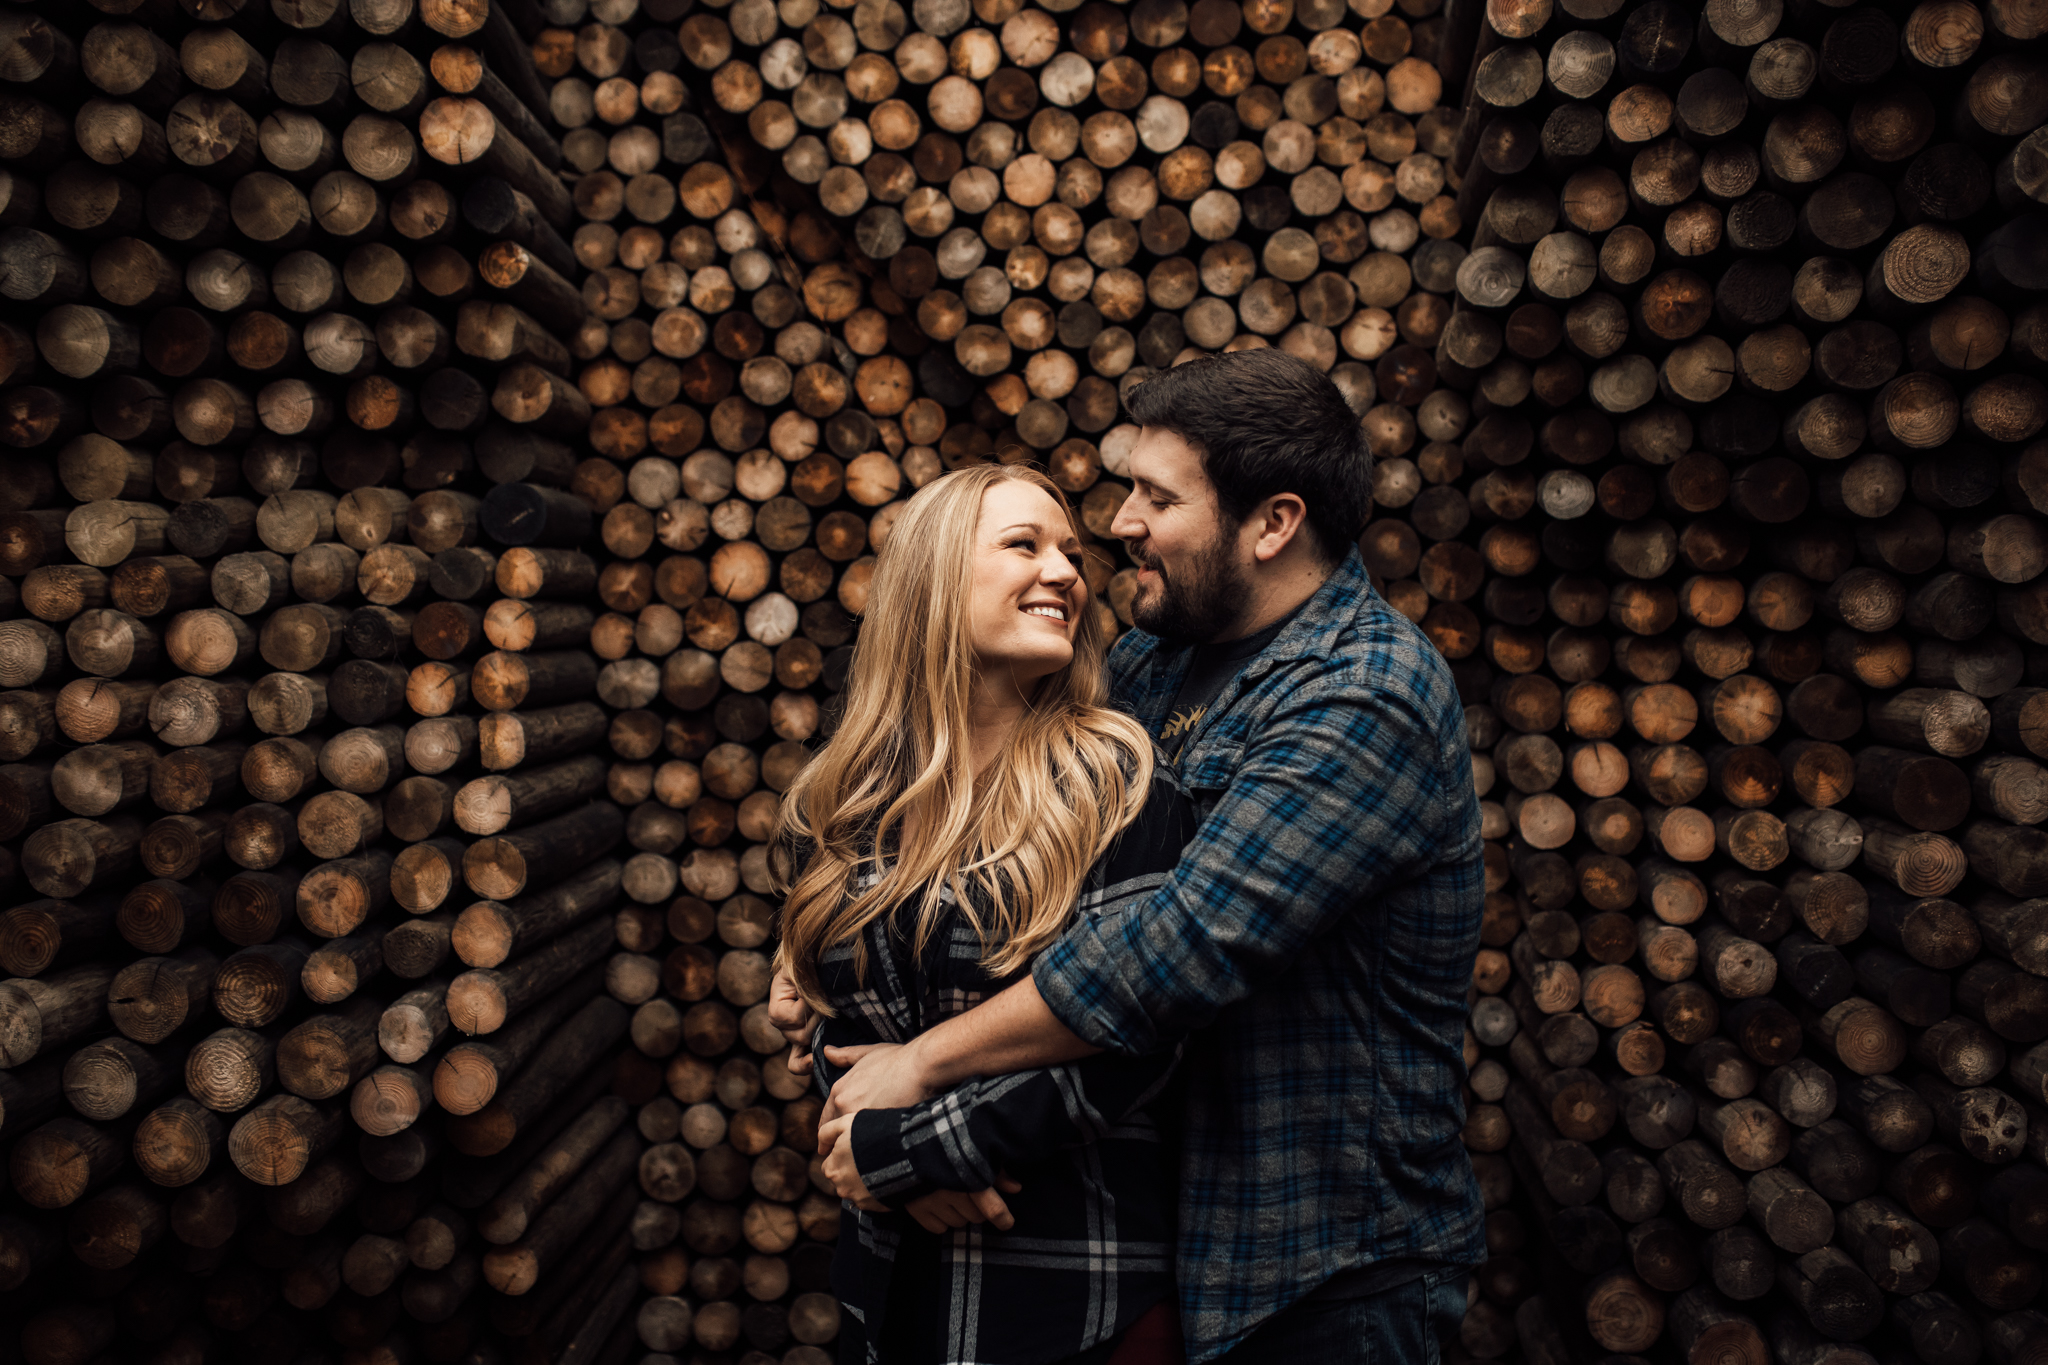 wiseacre-brewing-wedding-photographer-the-warmth-around-you-cassie-cook-photography (26 of 64).jpg